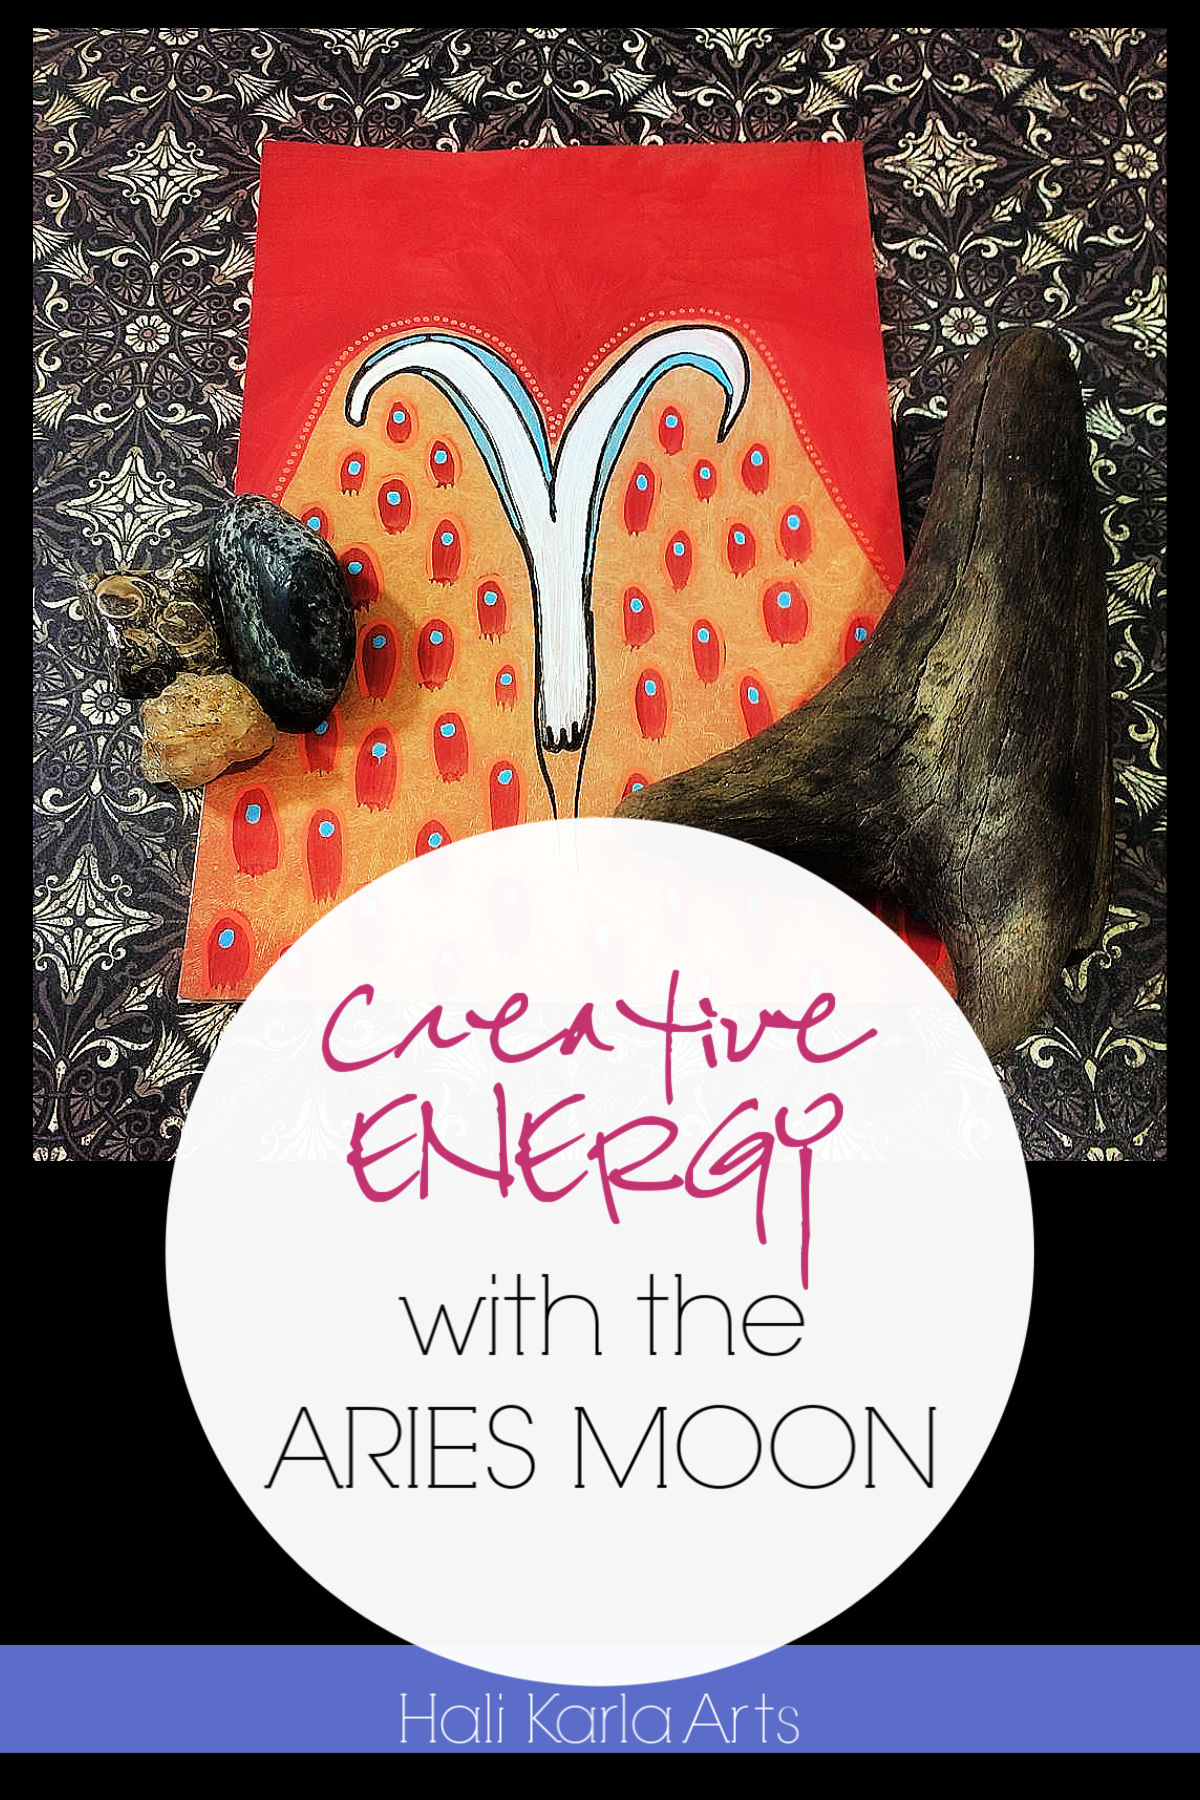 Creative Energy focus when the Moon is the the sign of ARIES | Hali Karla Arts